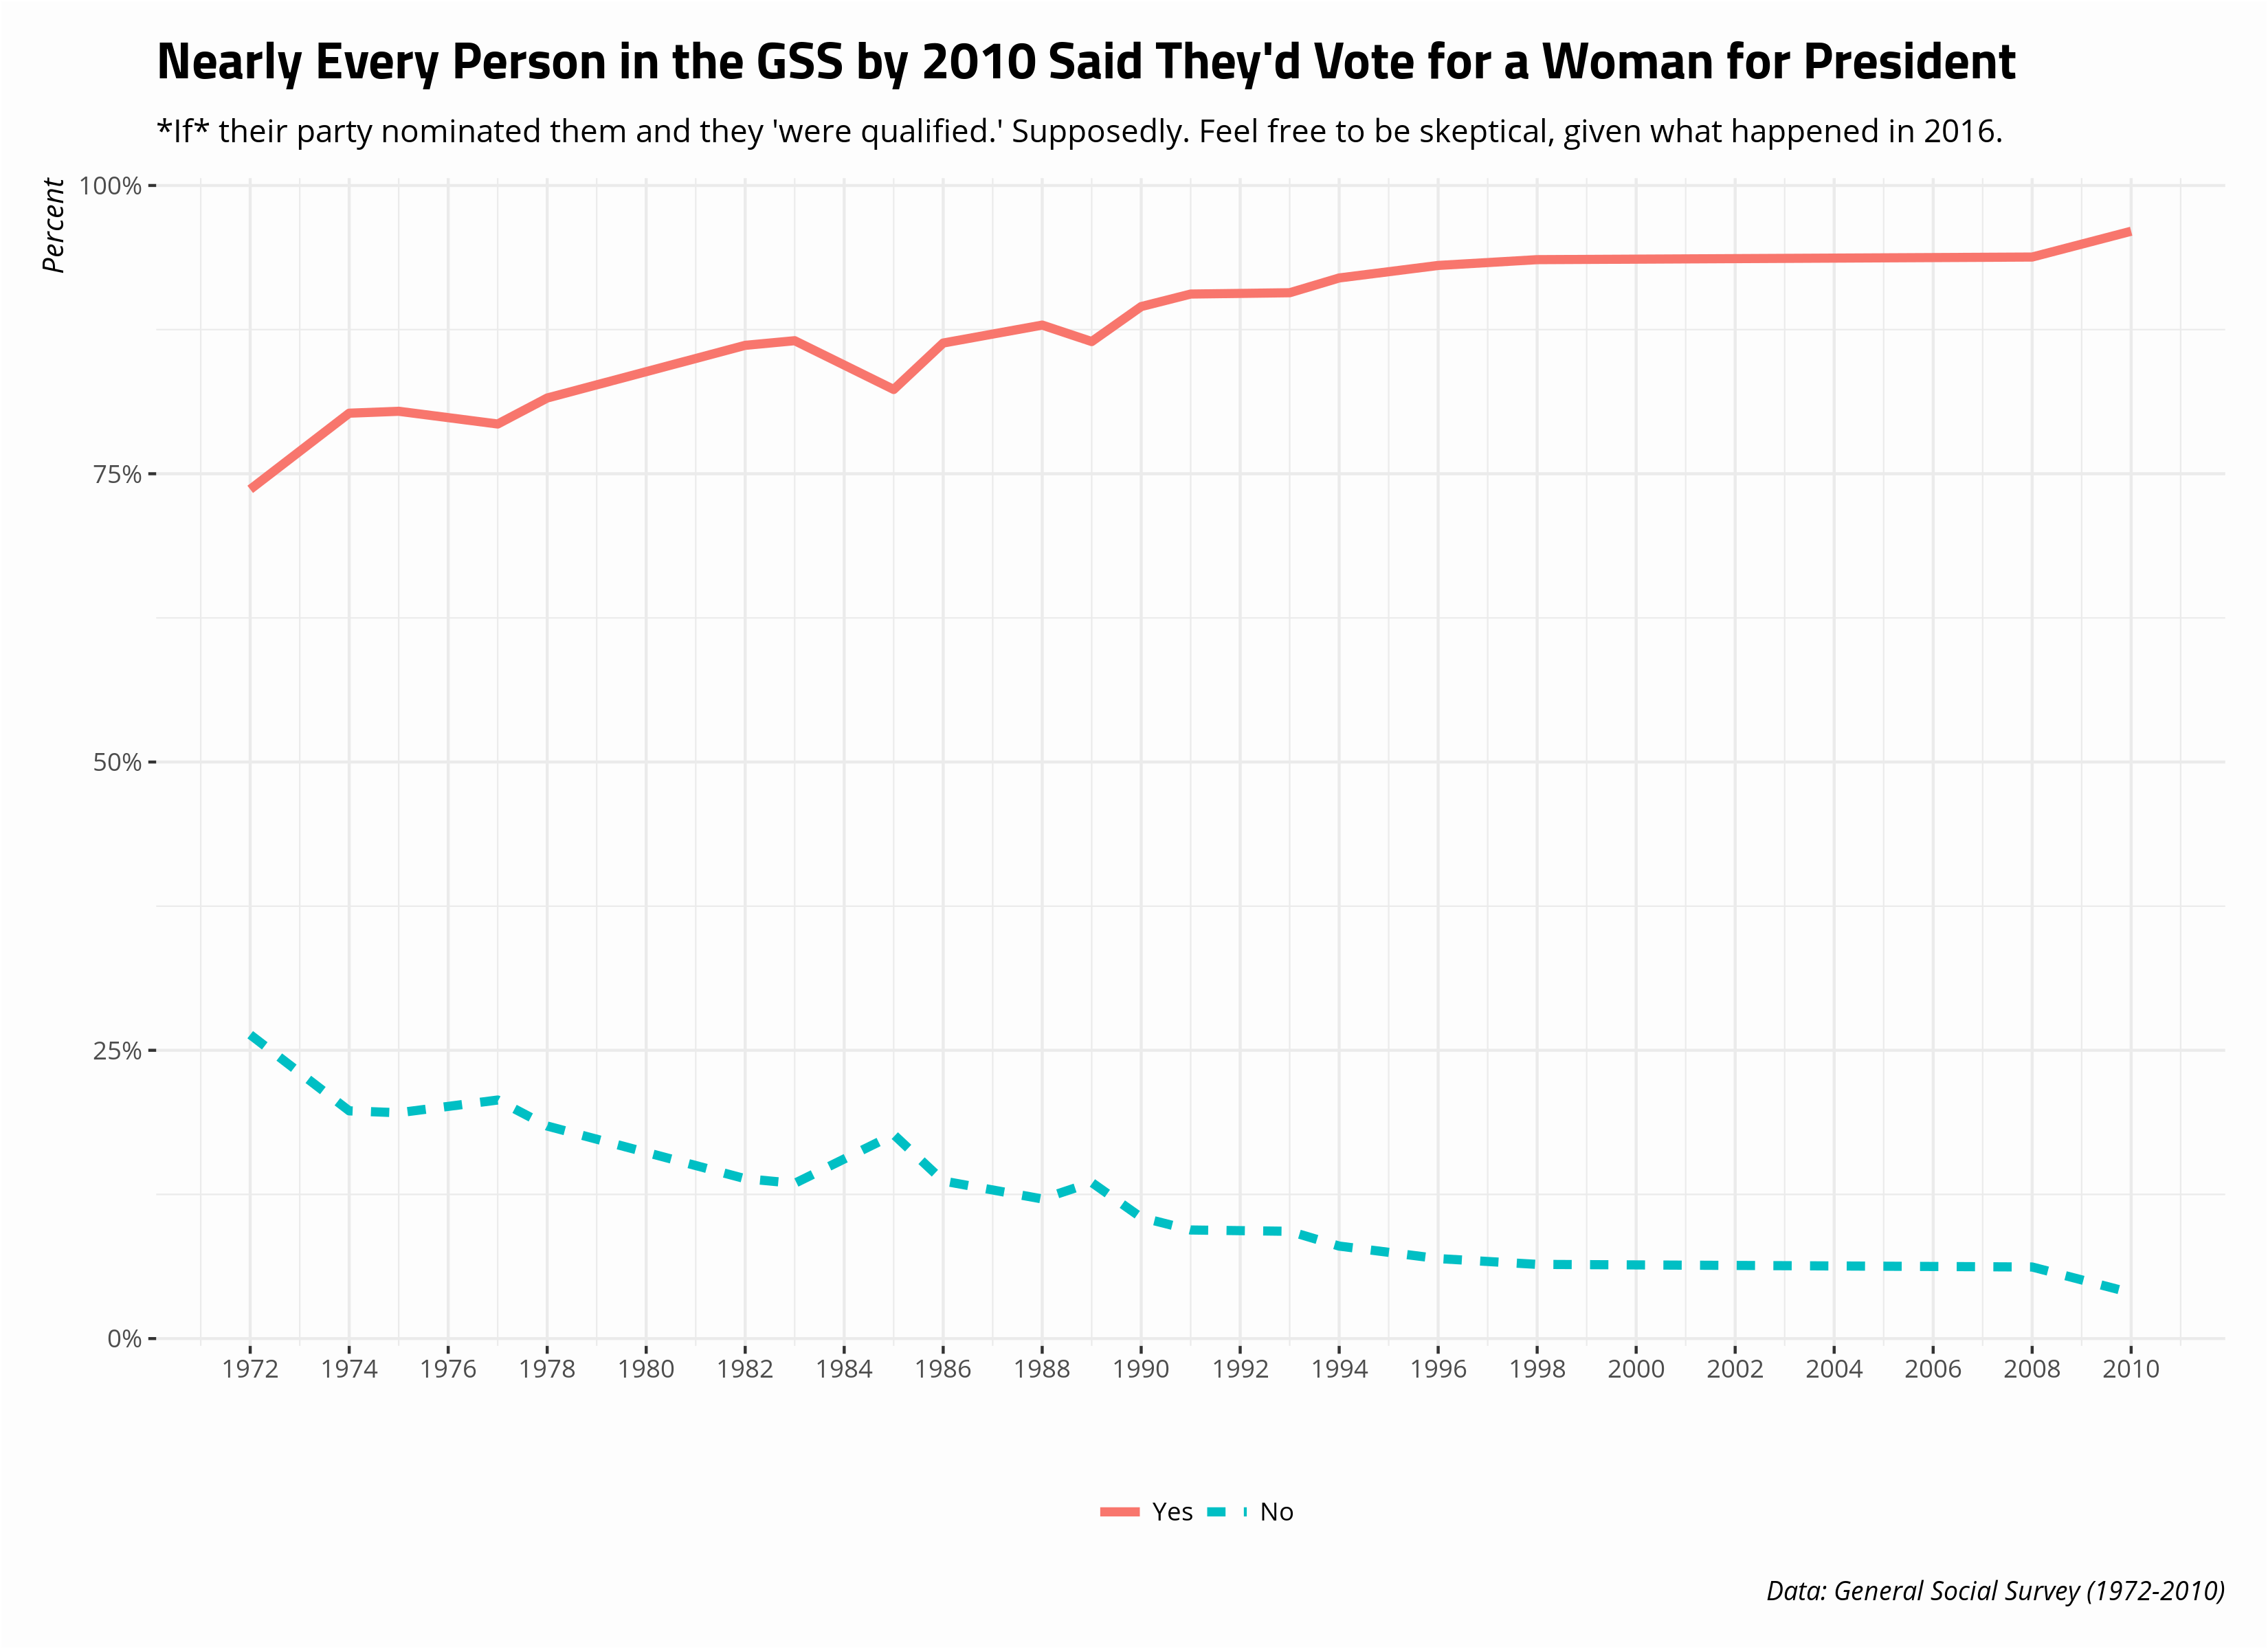 plot of chunk gss-would-vote-for-a-women-for-president